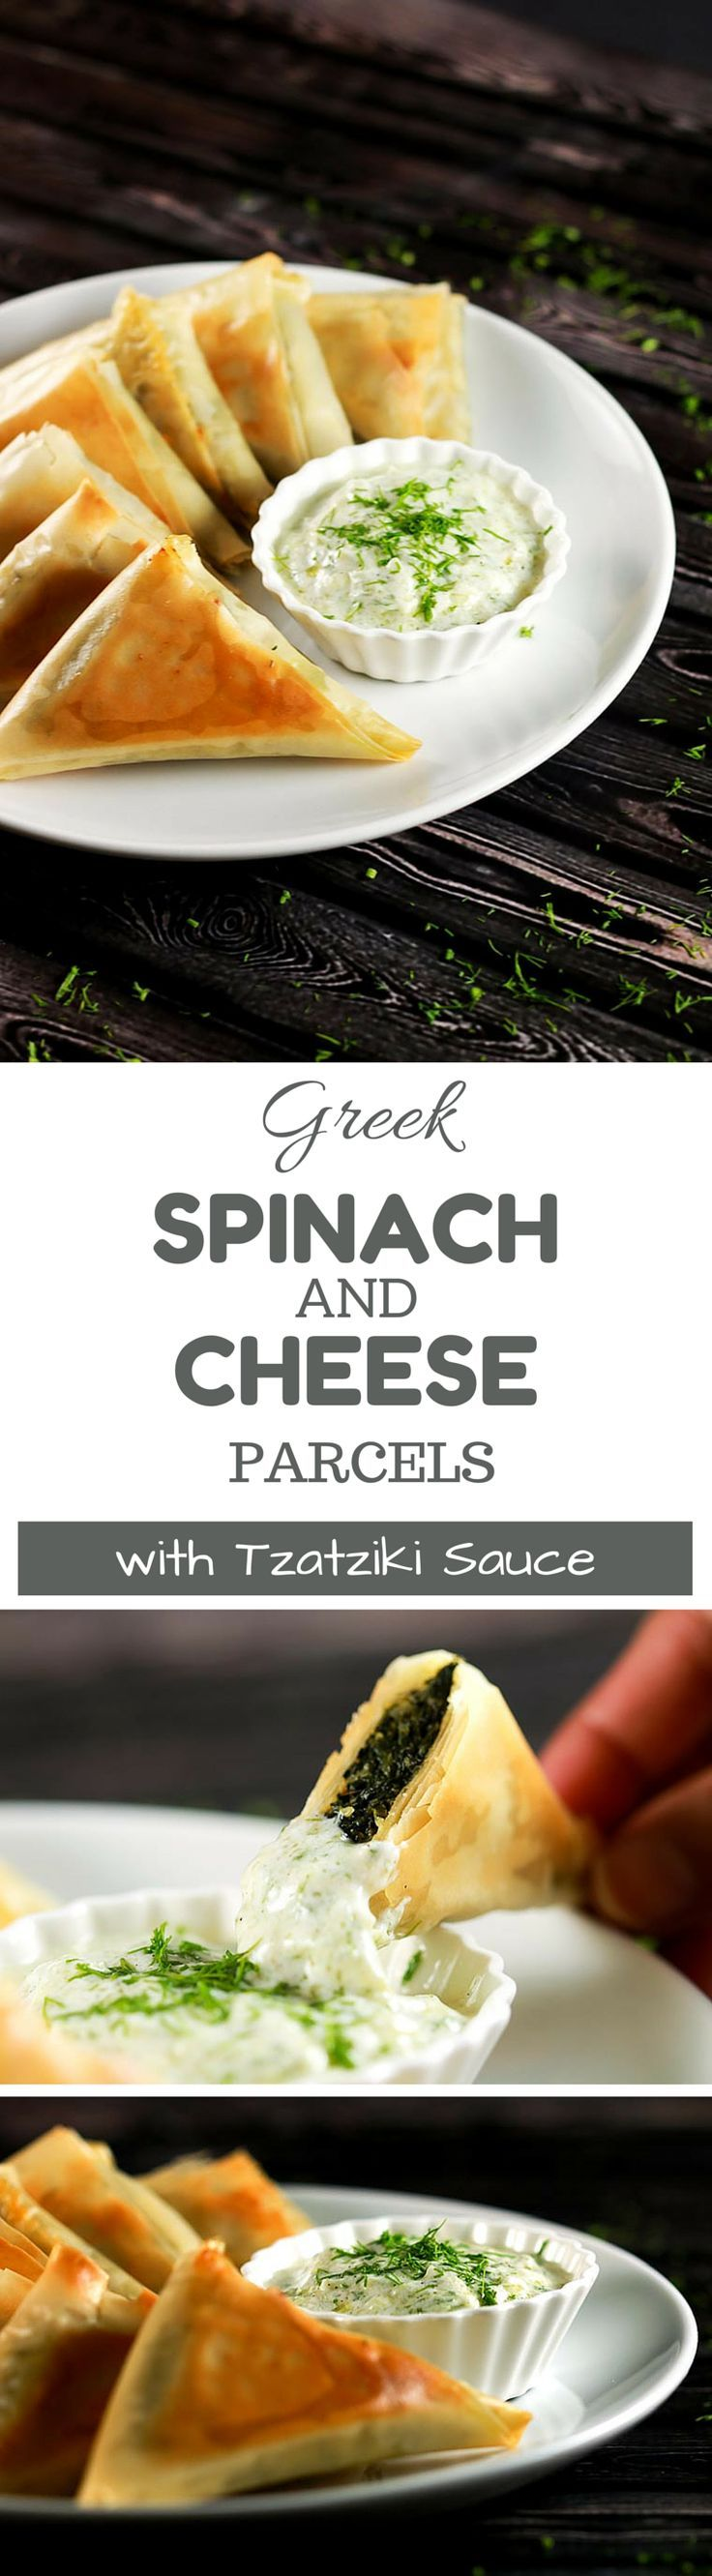 These Greek parcels (called Spanakopitas in Greek) are incredibly easy to make plus they're baked and not fried! YUM! Healthy and absolutely delicious! | http://ScrambledChefs.com